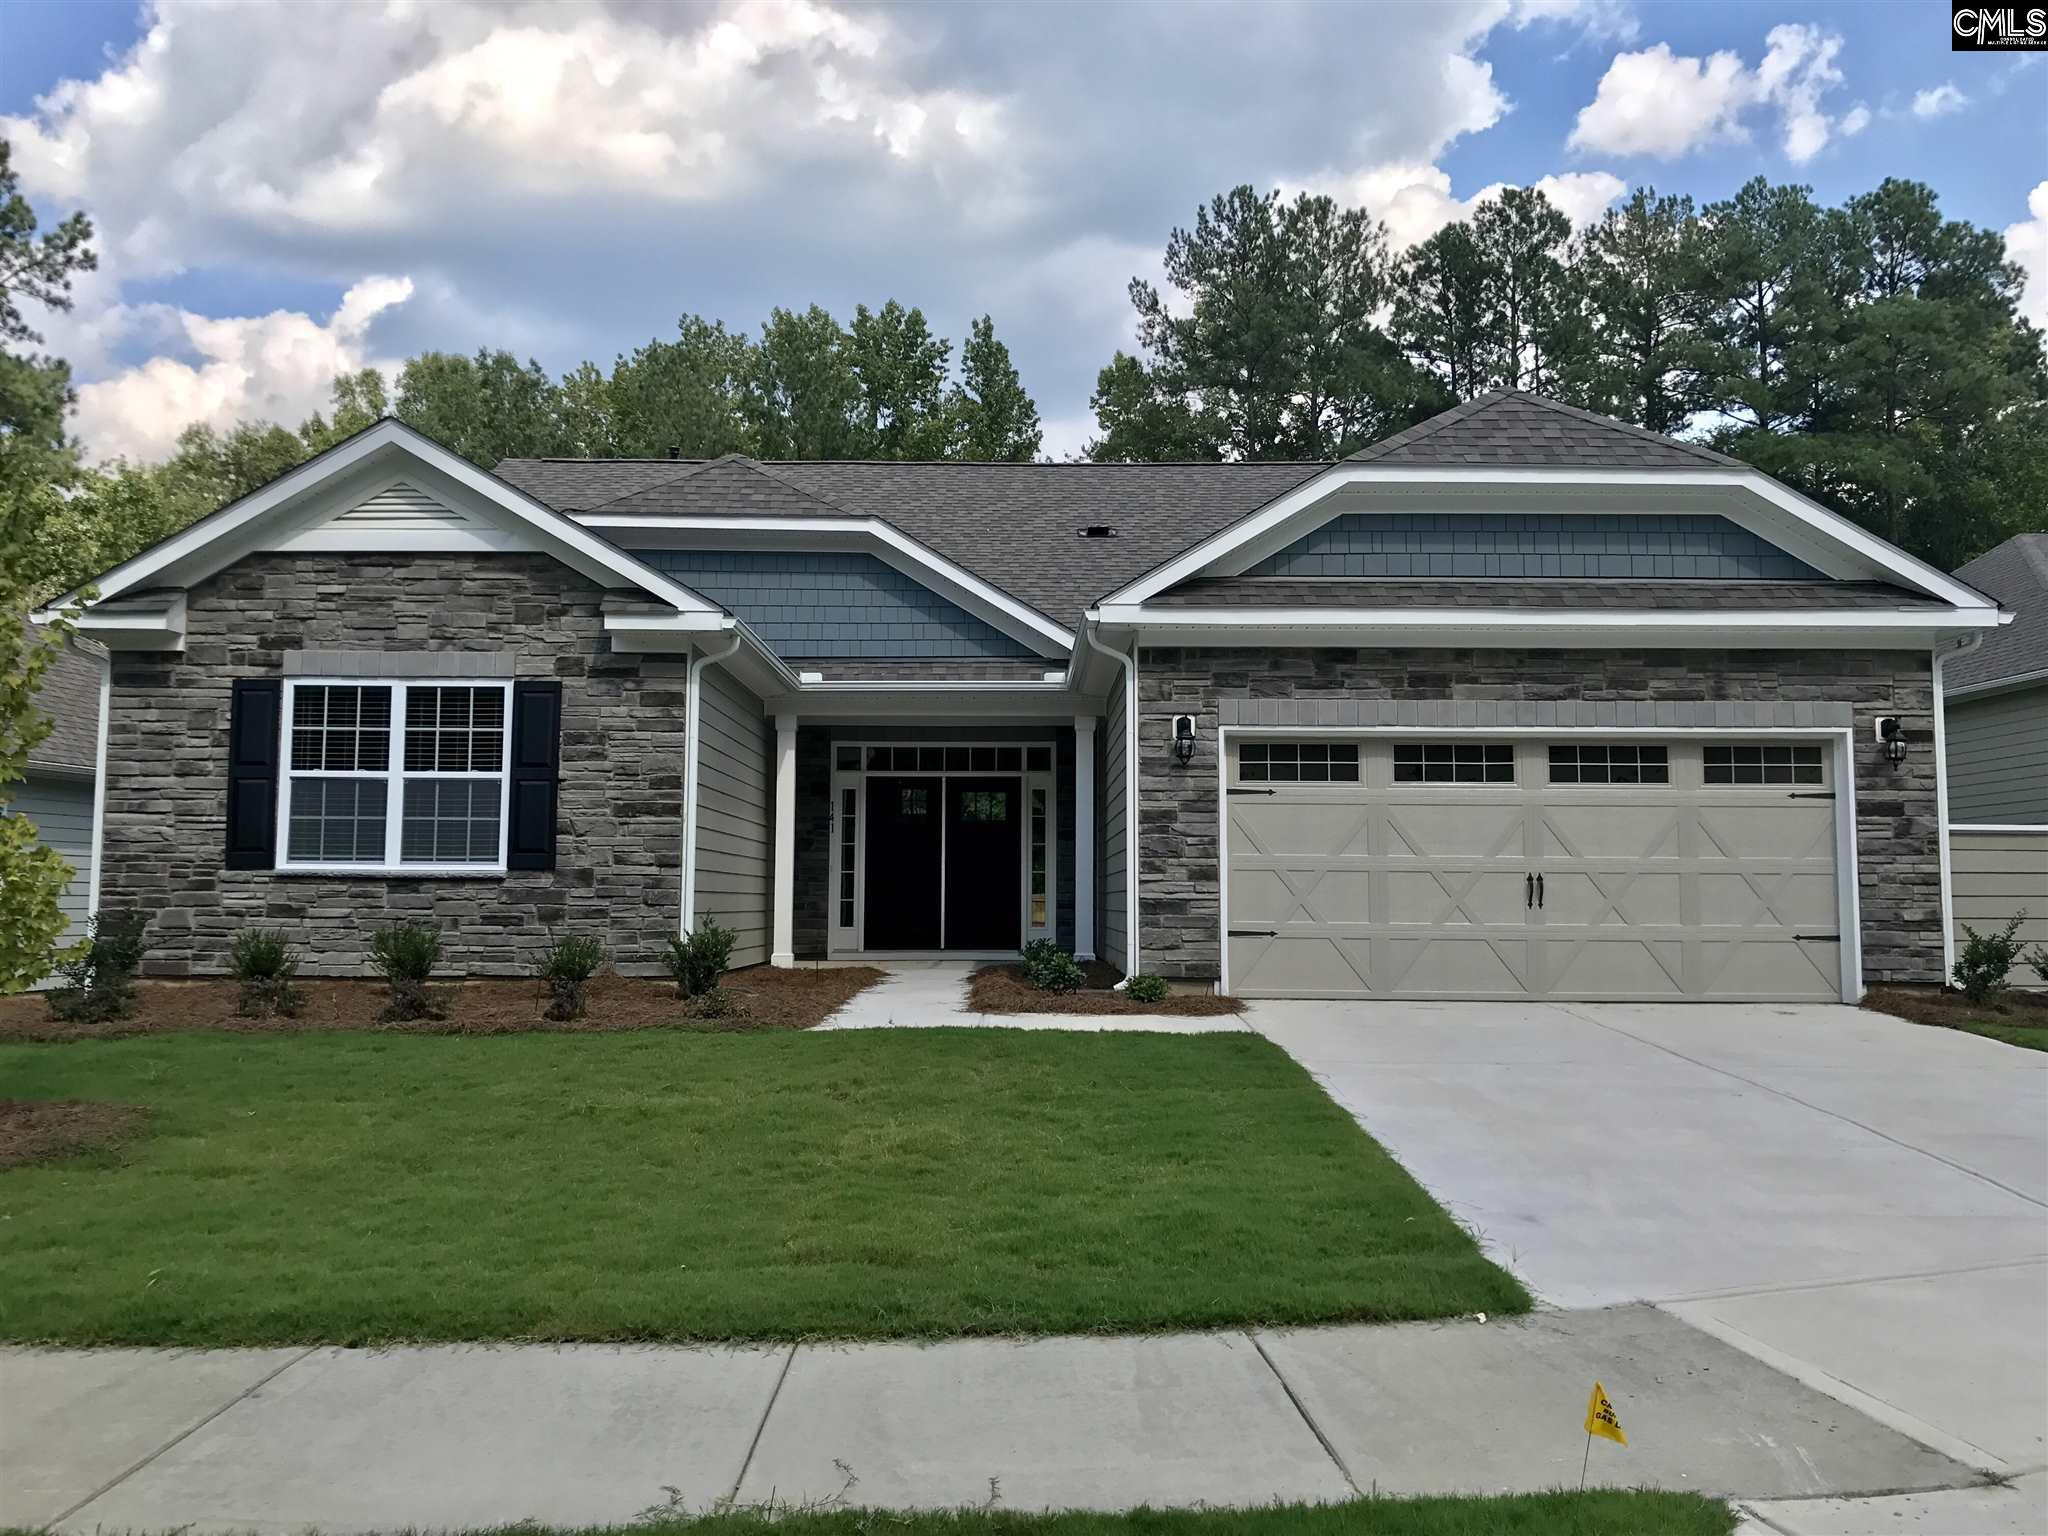 586  Links Crossing #2068 Blythewood, SC 29016